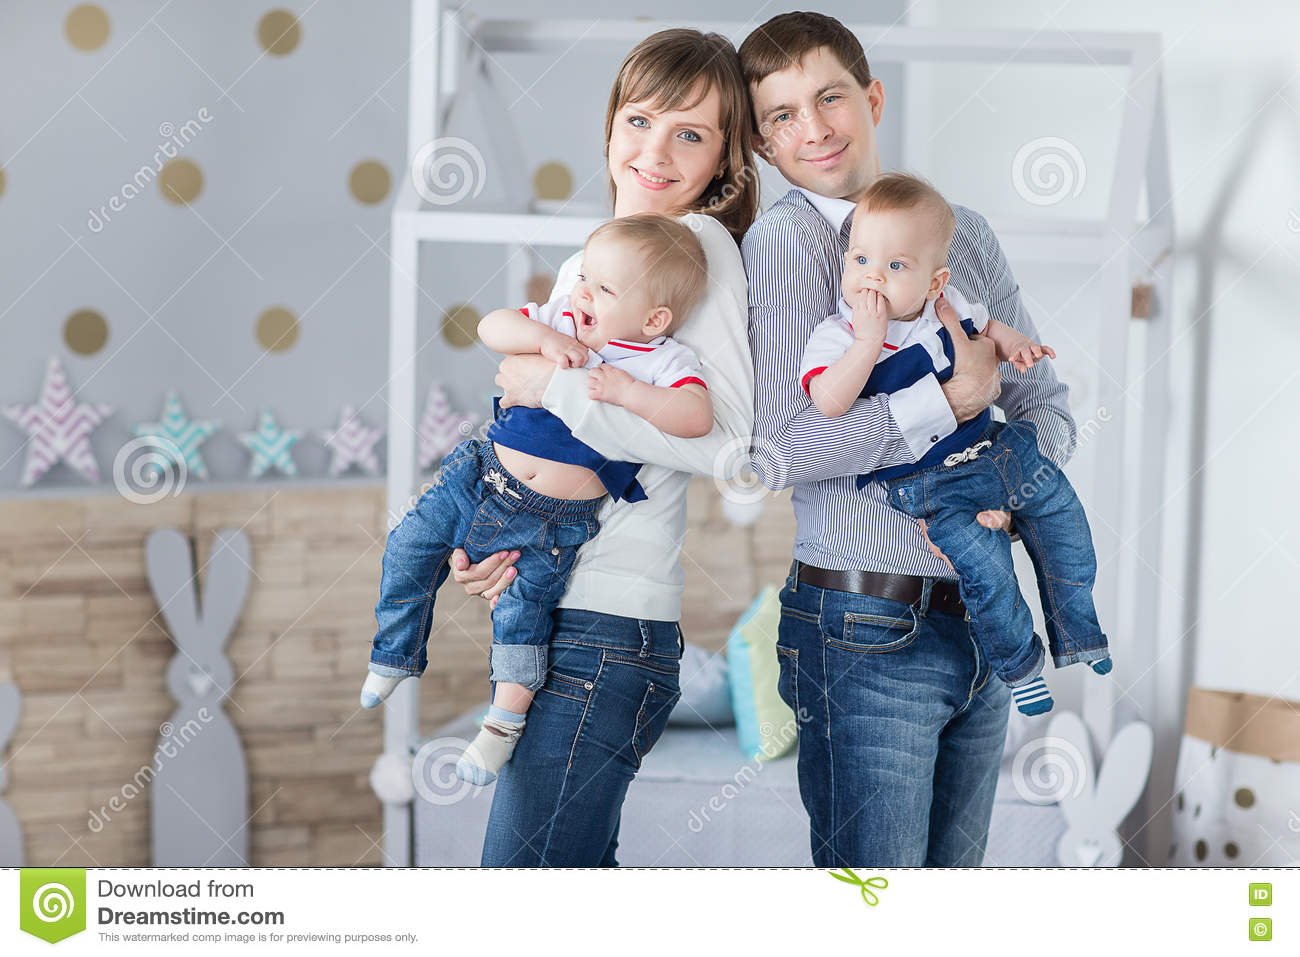 Family Portrait Of Happy Mom Dad Stock Photo - Image of father, glee ...